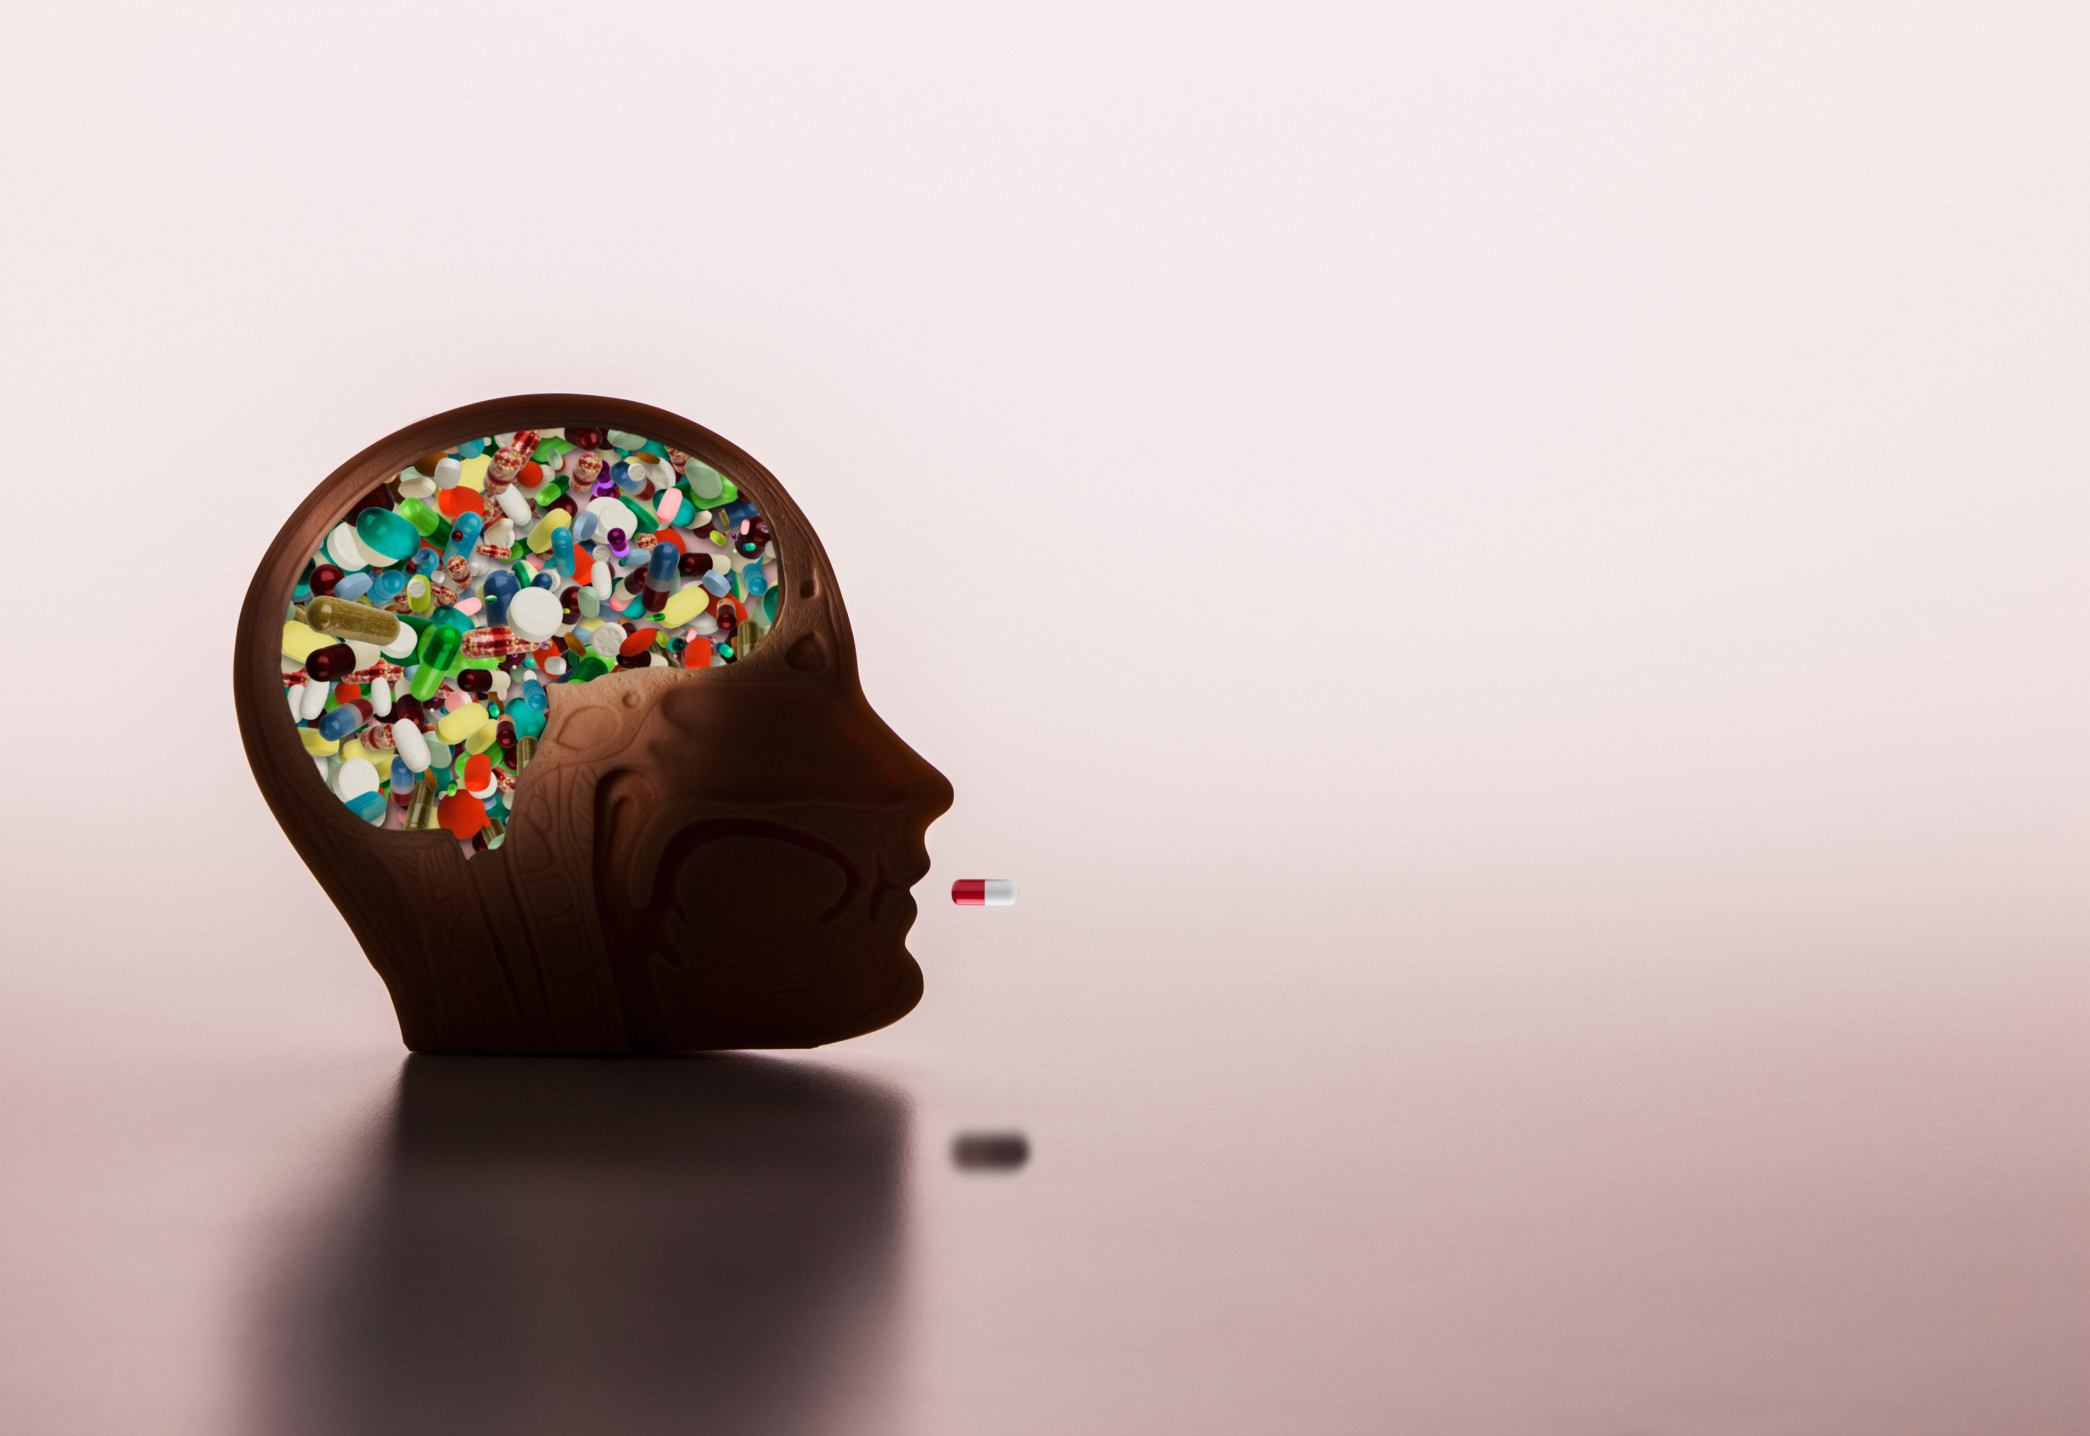 What Are Over The Counter Drugs Doing To Your Brain